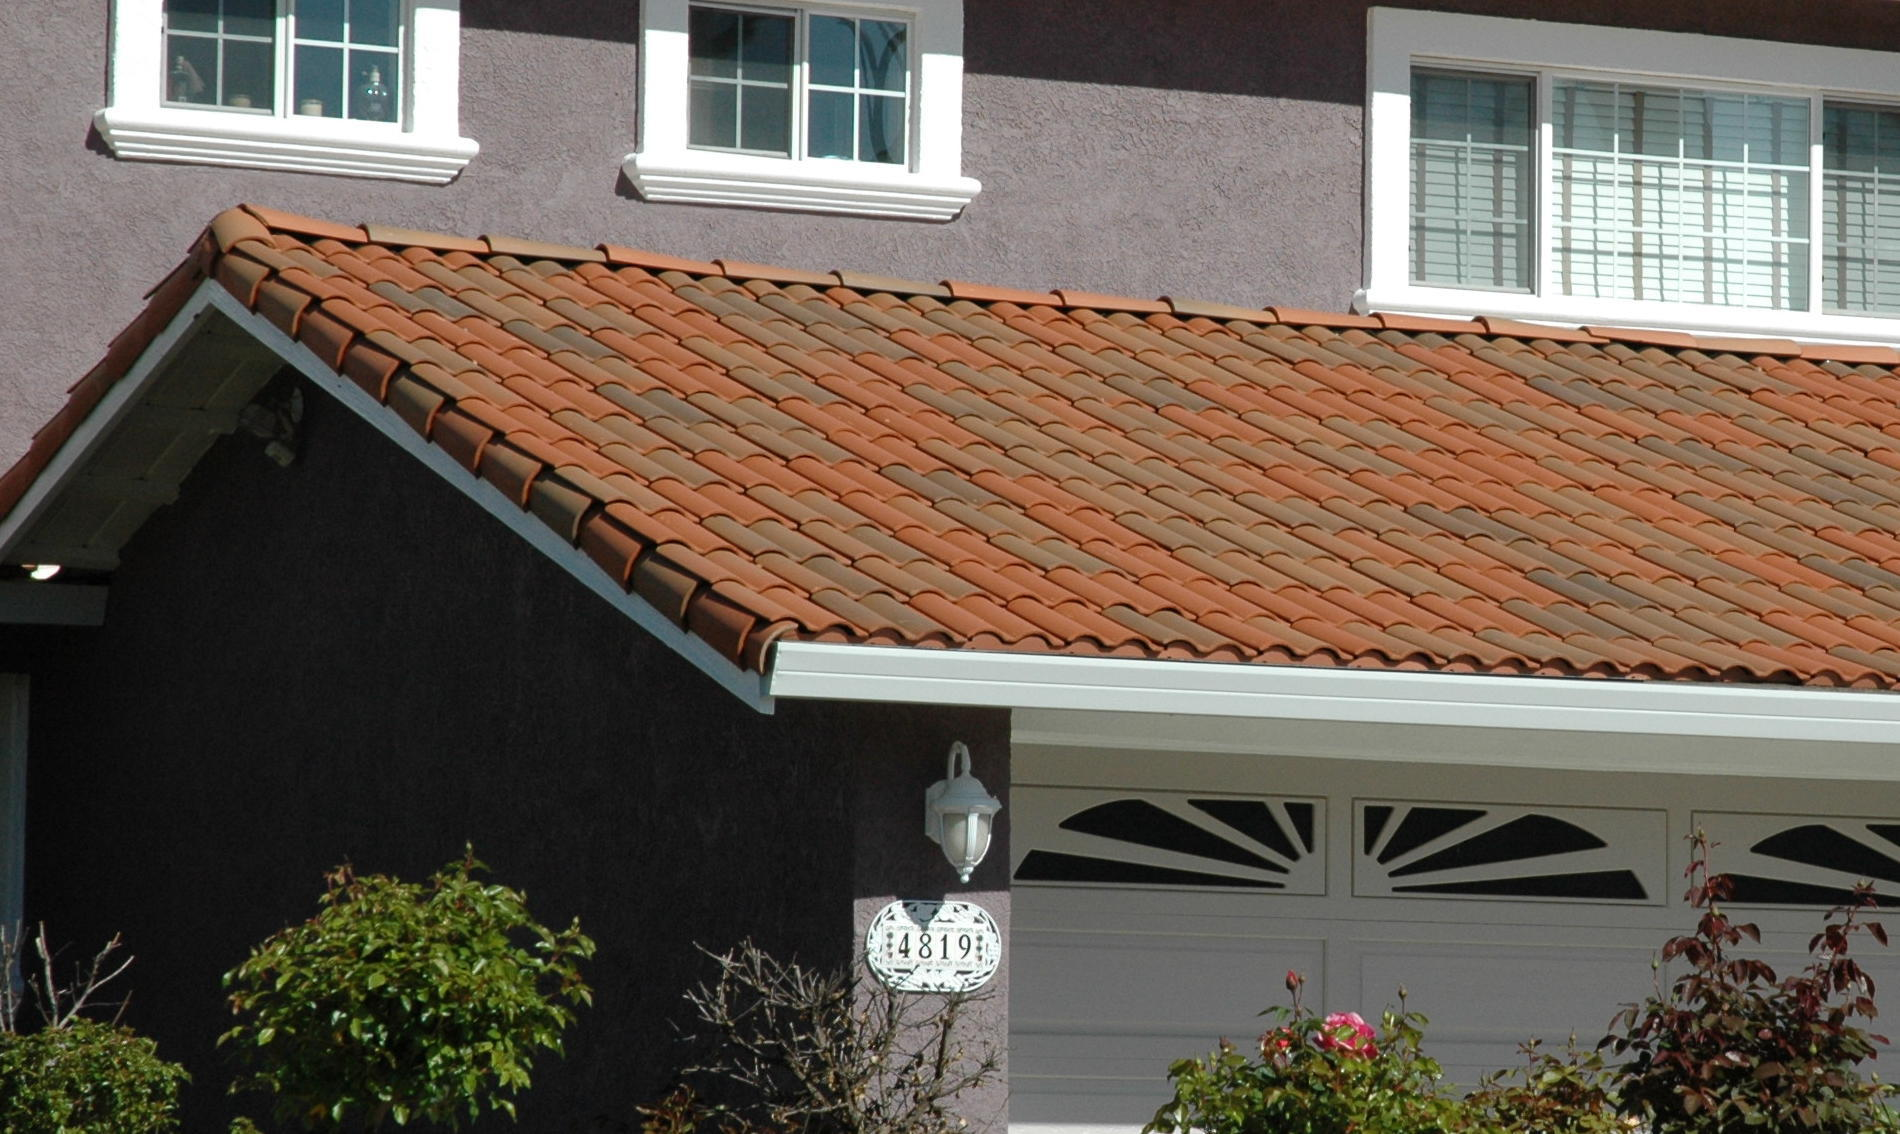 Boral Claylite Roofs